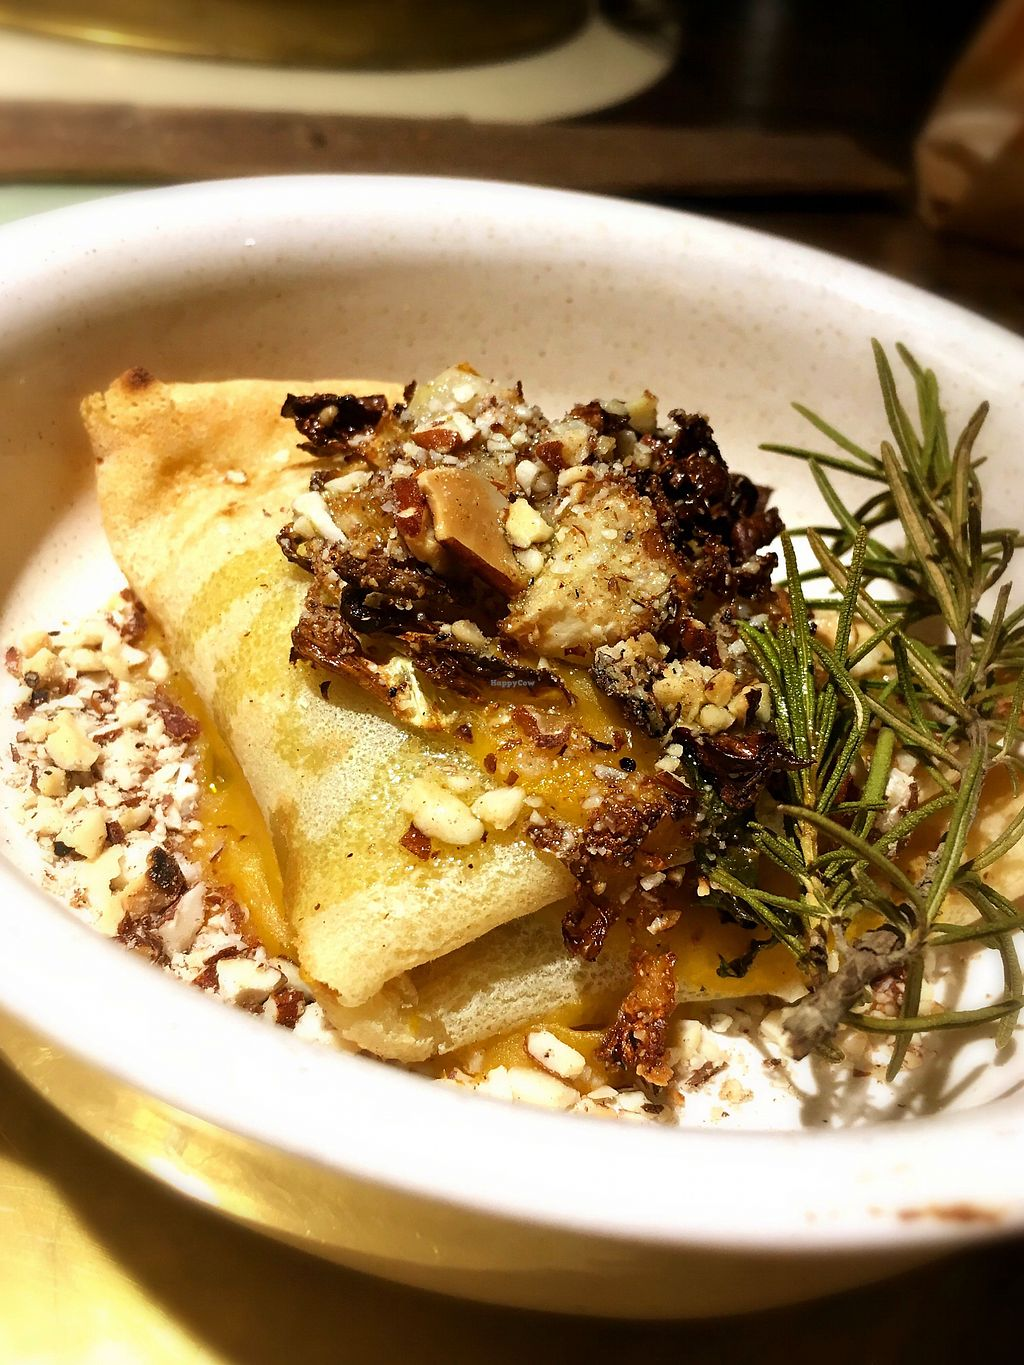 """Photo of Fattoria San Martino  by <a href=""""/members/profile/FranMcgarryArtist"""">FranMcgarryArtist</a> <br/>Superb Vegan crepes <br/> September 7, 2017  - <a href='/contact/abuse/image/21618/301862'>Report</a>"""